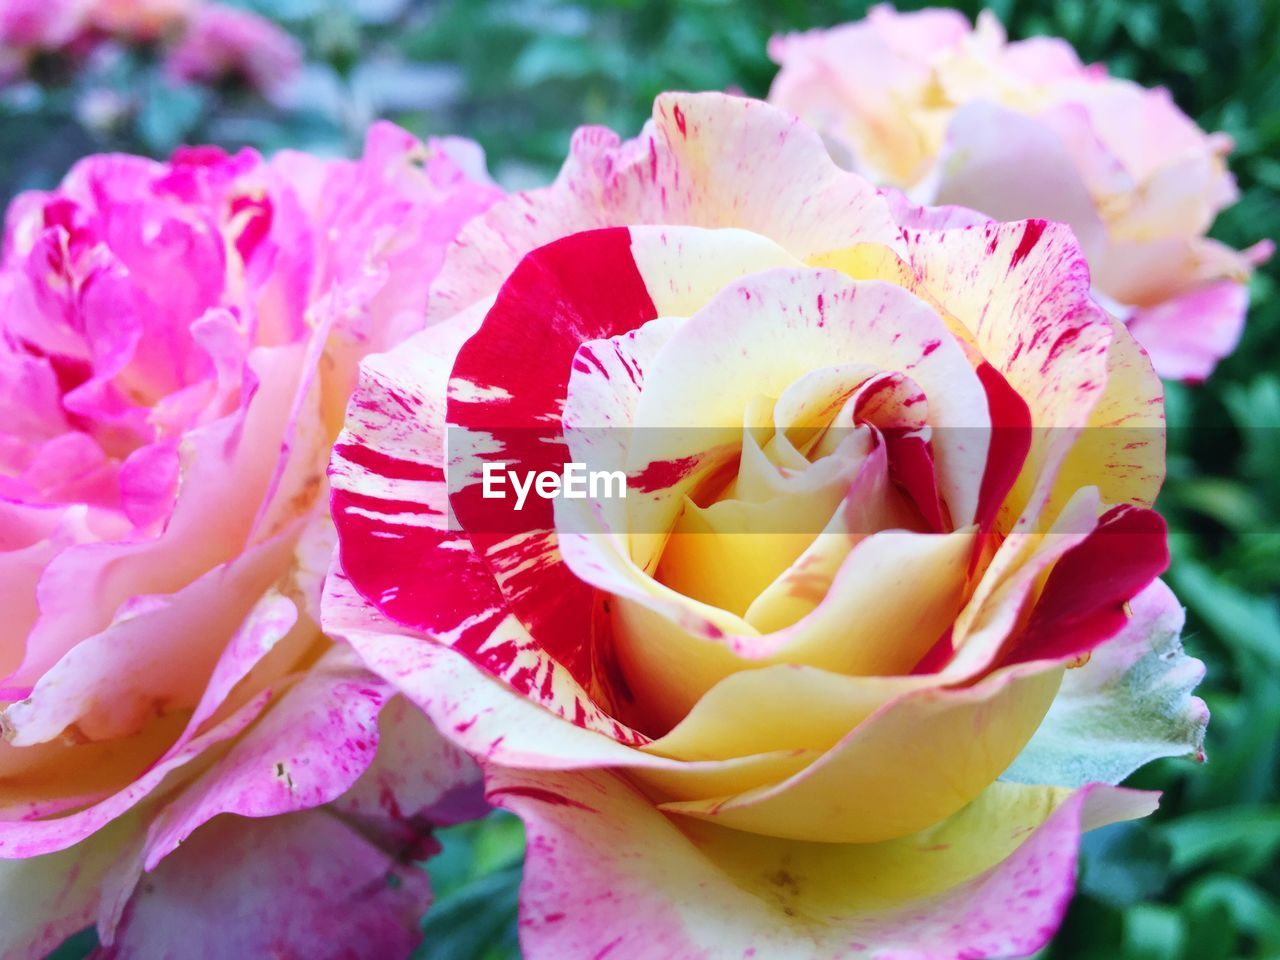 flower, flowering plant, beauty in nature, vulnerability, fragility, petal, plant, inflorescence, freshness, close-up, flower head, pink color, growth, nature, rose, focus on foreground, day, no people, rose - flower, outdoors, pollen, softness, flower arrangement, bouquet